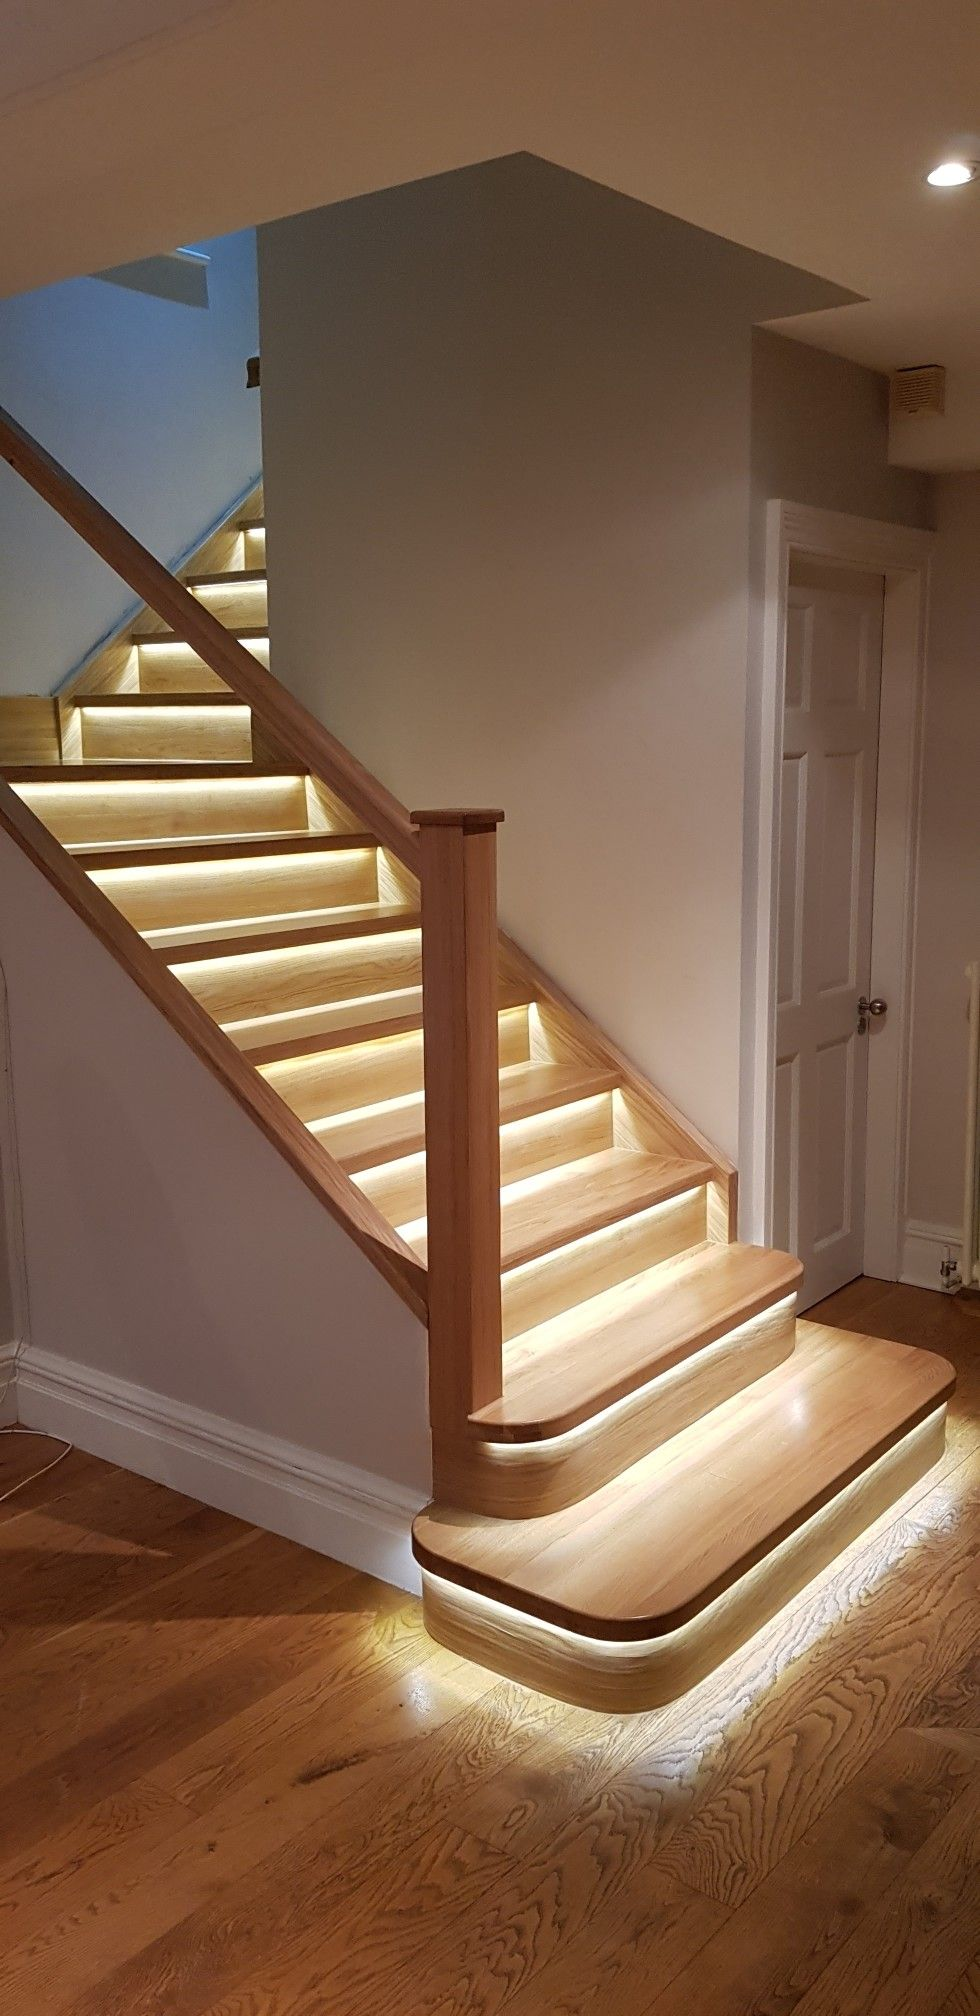 Lighting Basement Washroom Stairs: Pin By K Lowell On Basement Stairs In 2019